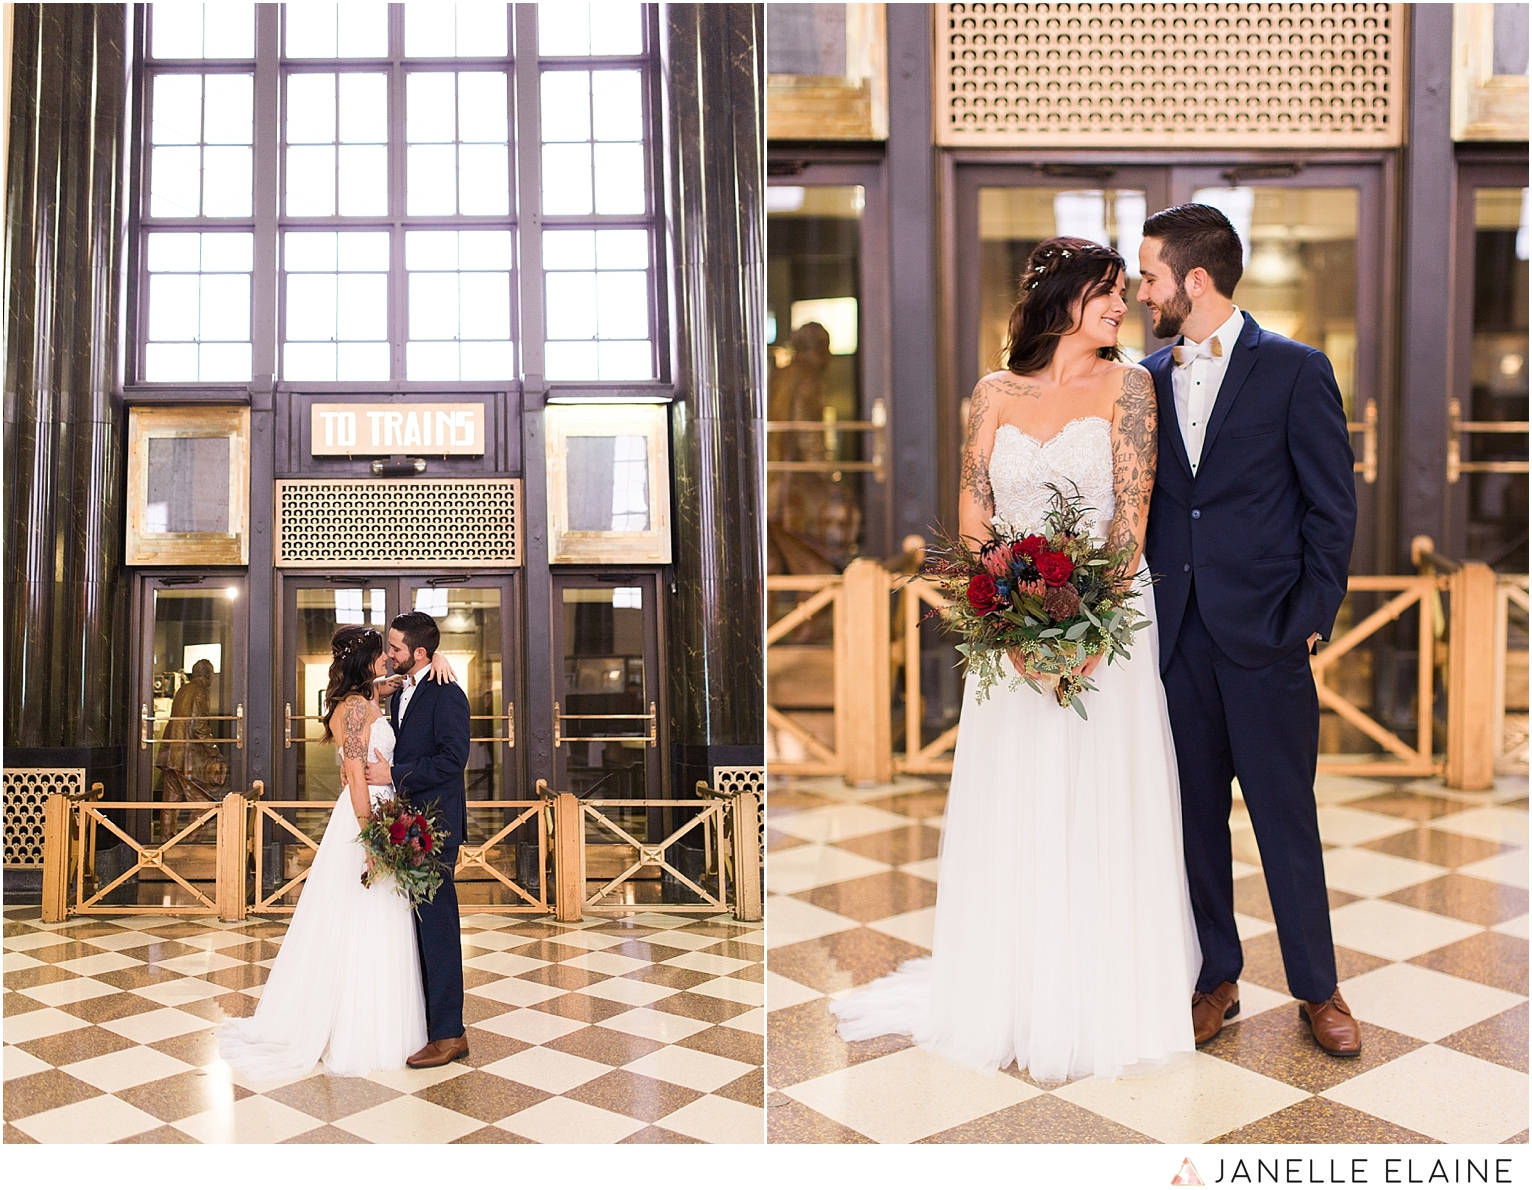 seattle wedding photographers-durham museum-wedding-omaha ne-destination-wedding-photographers-janelle elaine-midwest bride-25.jpg